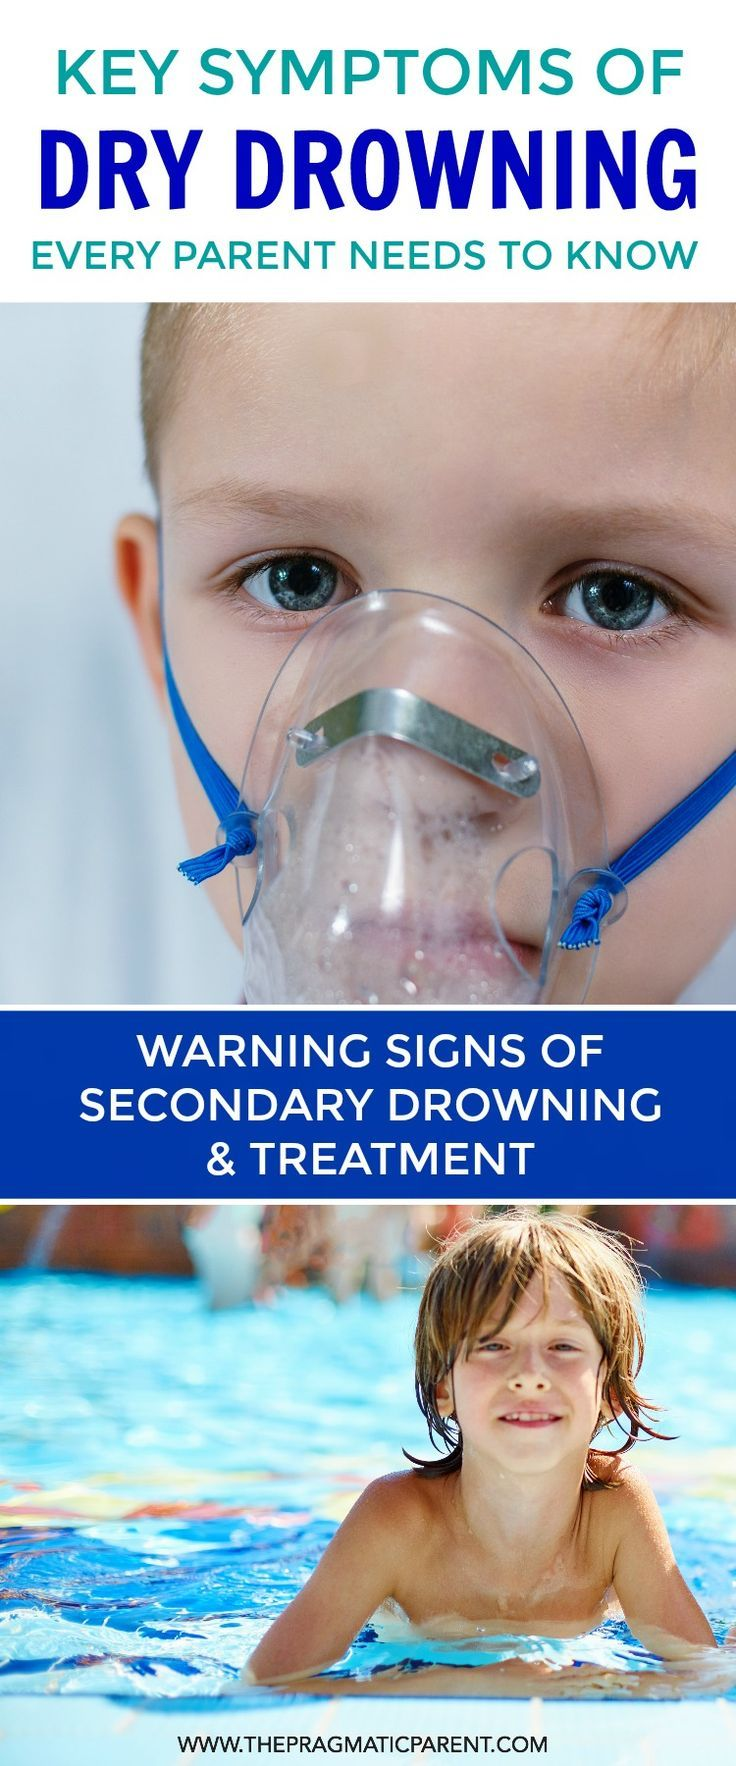 Know the Signs of Dry Drowning and Secondary Drowning (different things) and the Symptoms to watch for including unusual behavior and flu like symptoms Caused by Secondary Drowning.  Keep your kids safe this summer when they're playing in and around water